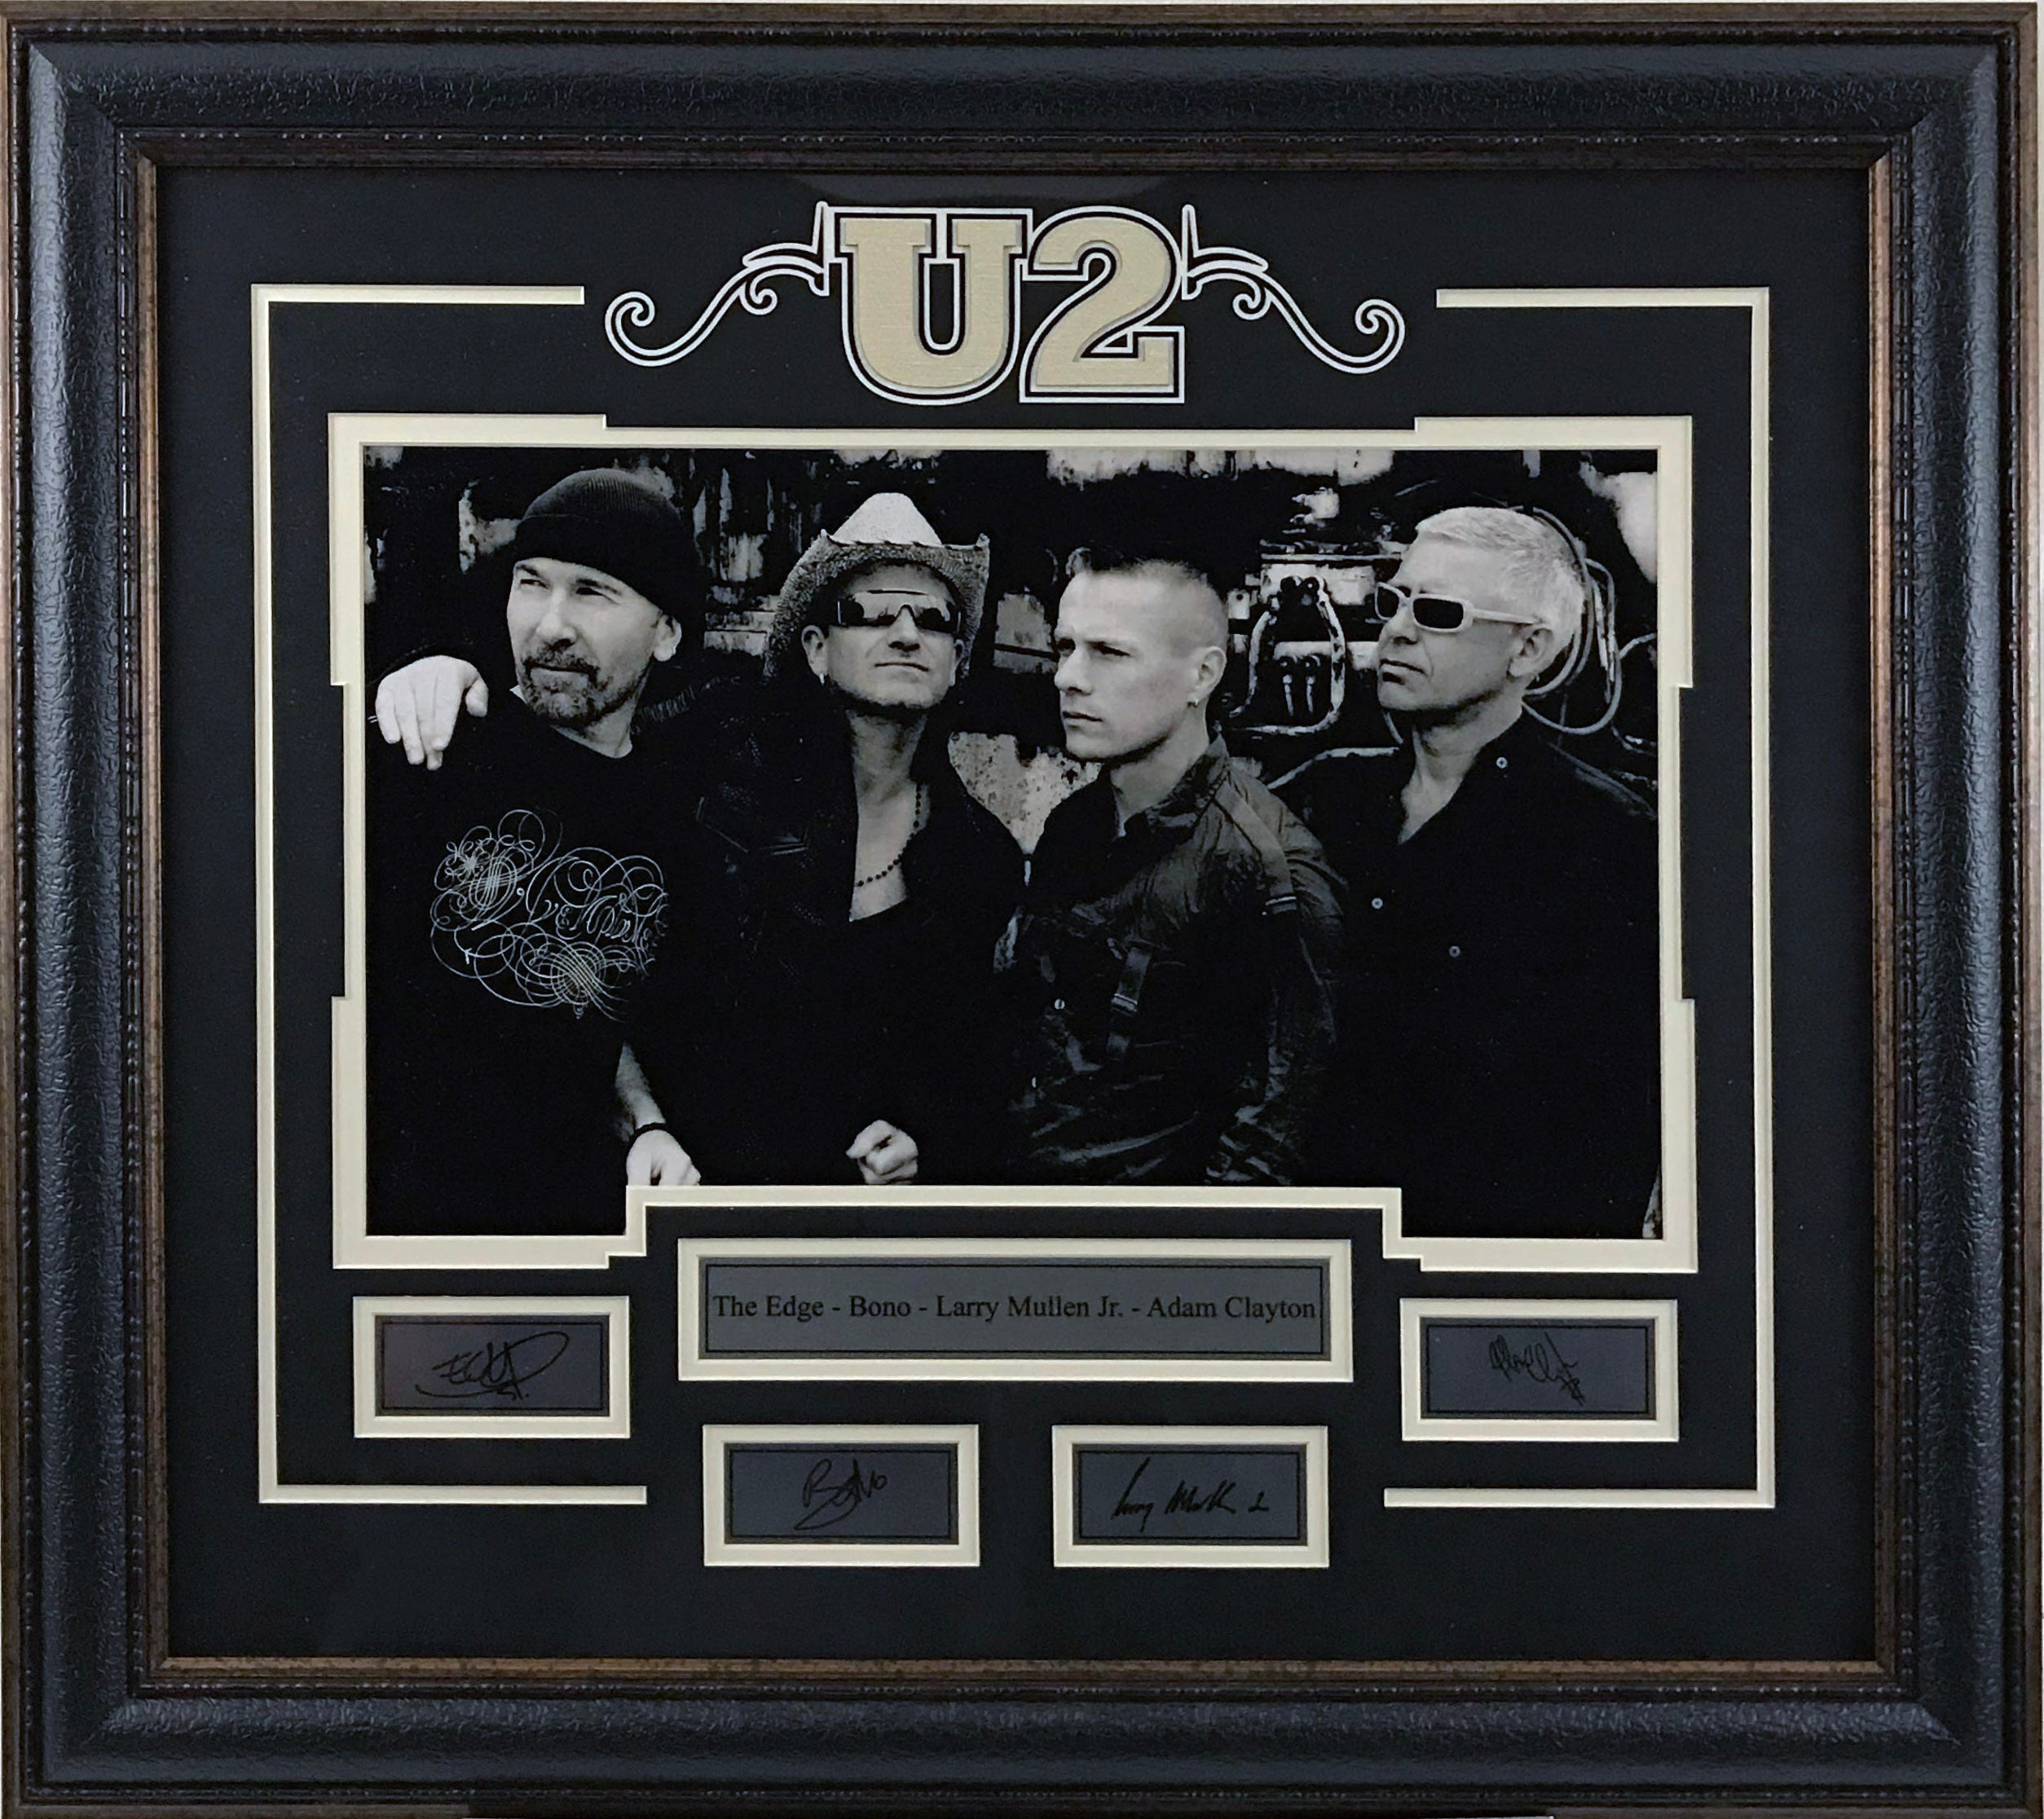 U2 Deluxe Framed 16x20 Photo with Laser Signatures.